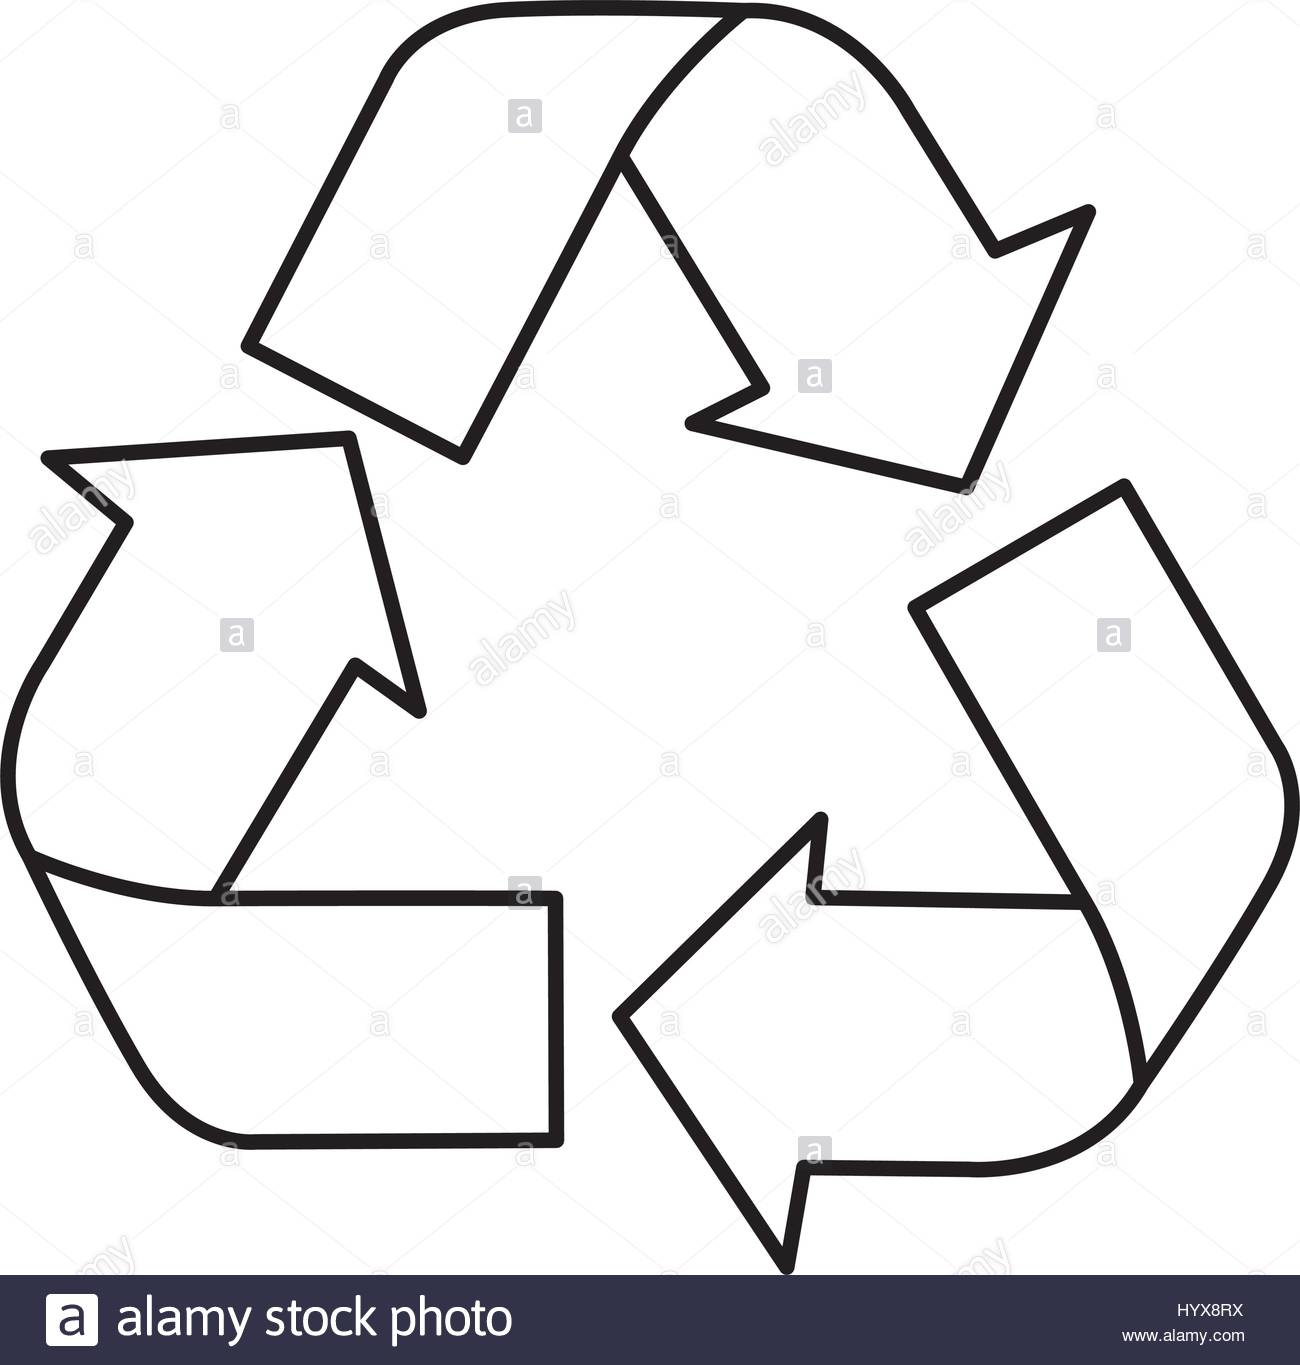 1300x1365 Silhouette Recycling Symbol With Arrows Stock Vector Art